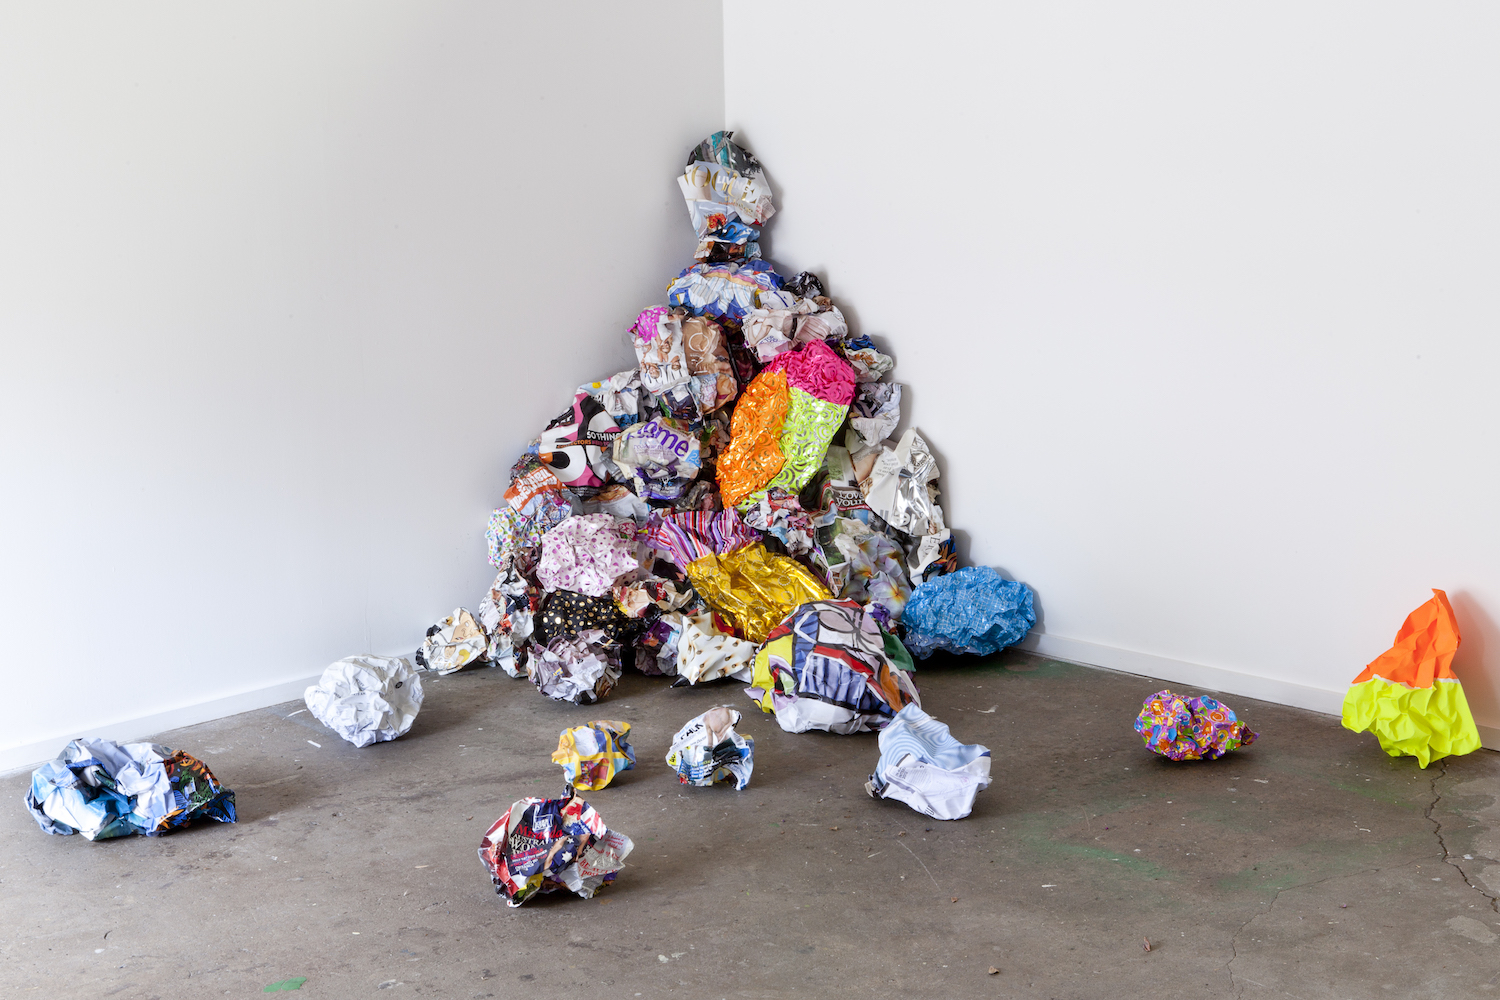 Ludovica Gioscia, Pack, Store, Clean, 2012. Installation view. Index, Sydney, AU. Photographer: Alex Wisser.